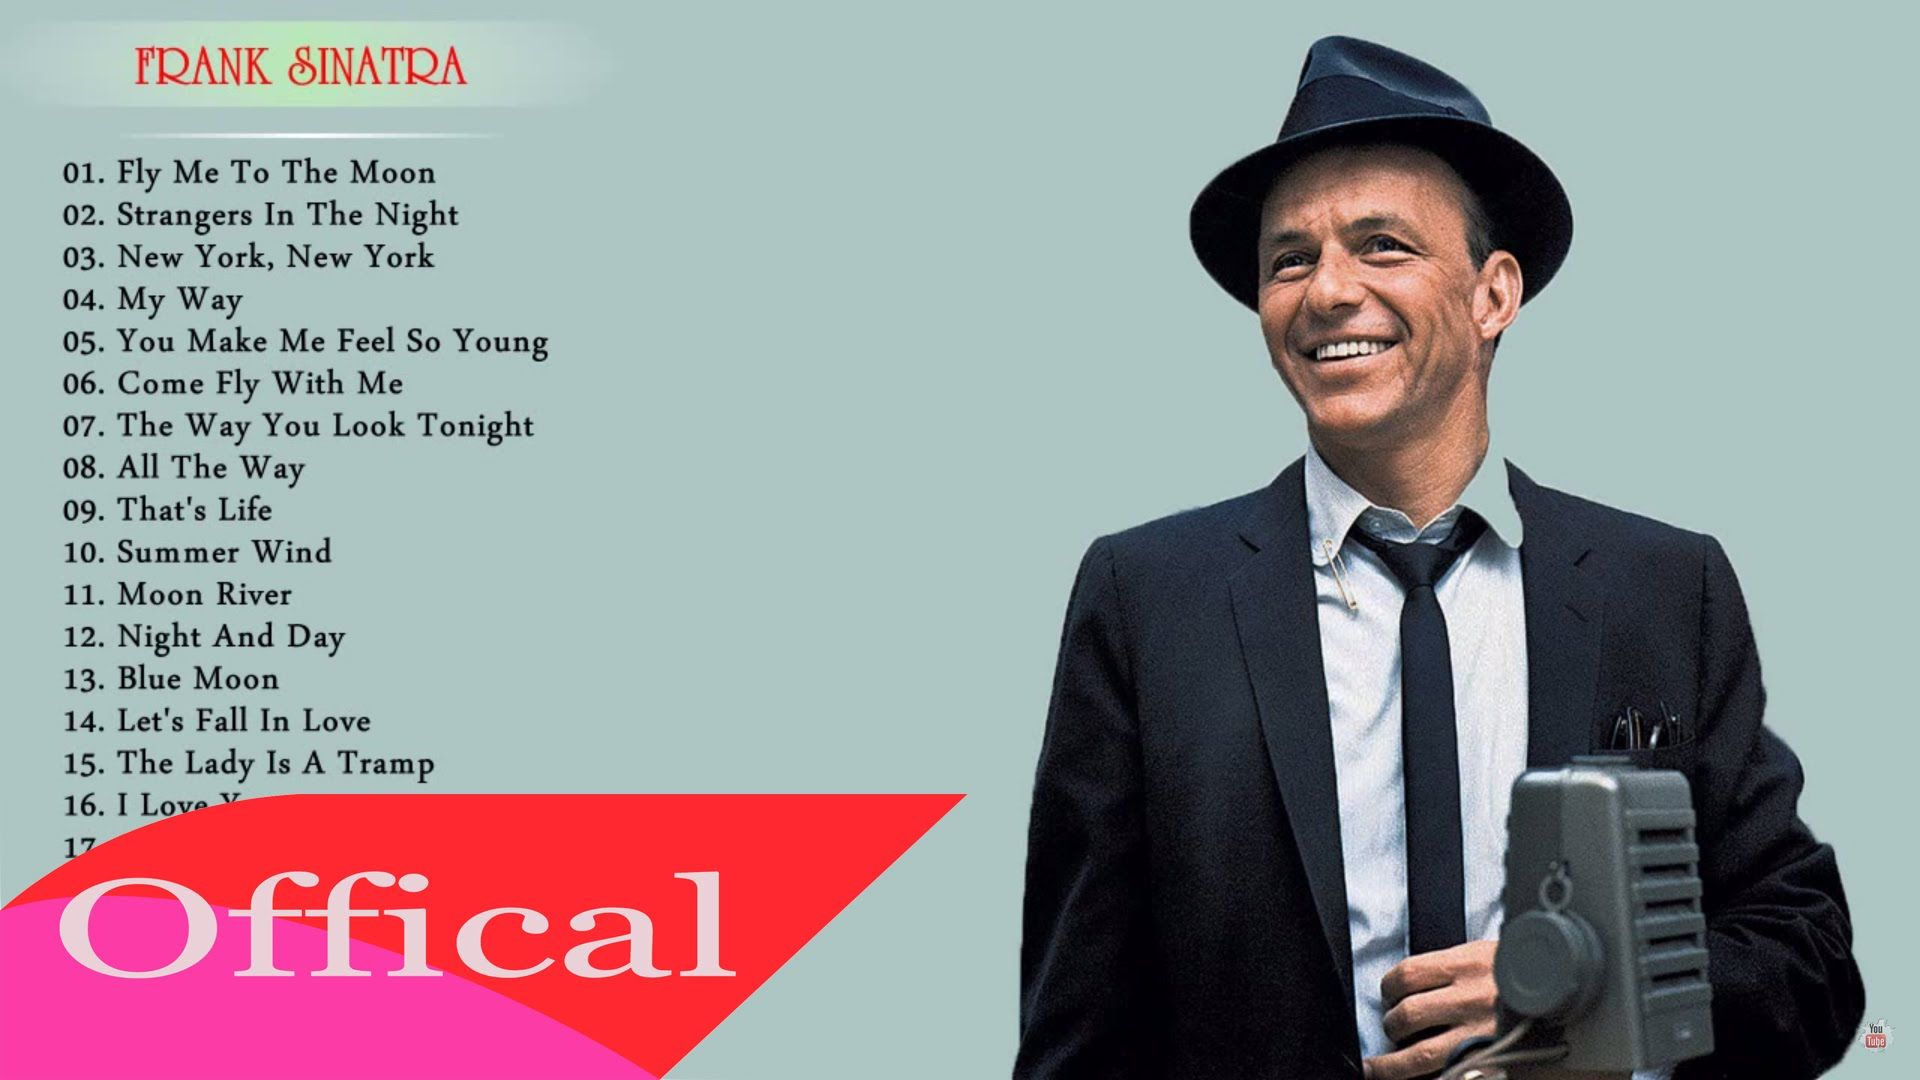 Frank sinatra famous songs